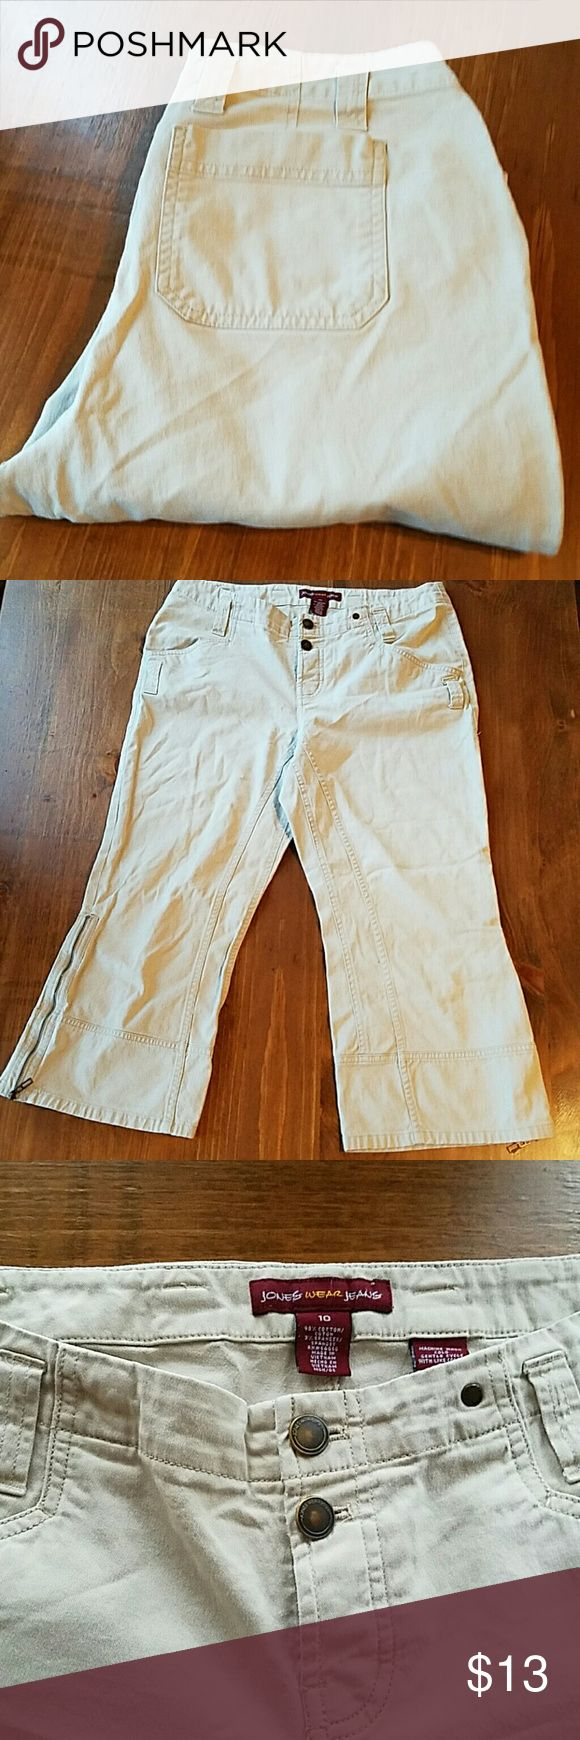 Jones New York Jones Wear Jeans Khaki Capris Jones New York Jones Wear Jeans Khaki Capris size 10, mid calf length, gently used in good condition. Please message me if you have any questions! Jones New York Jeans Ankle & Cropped